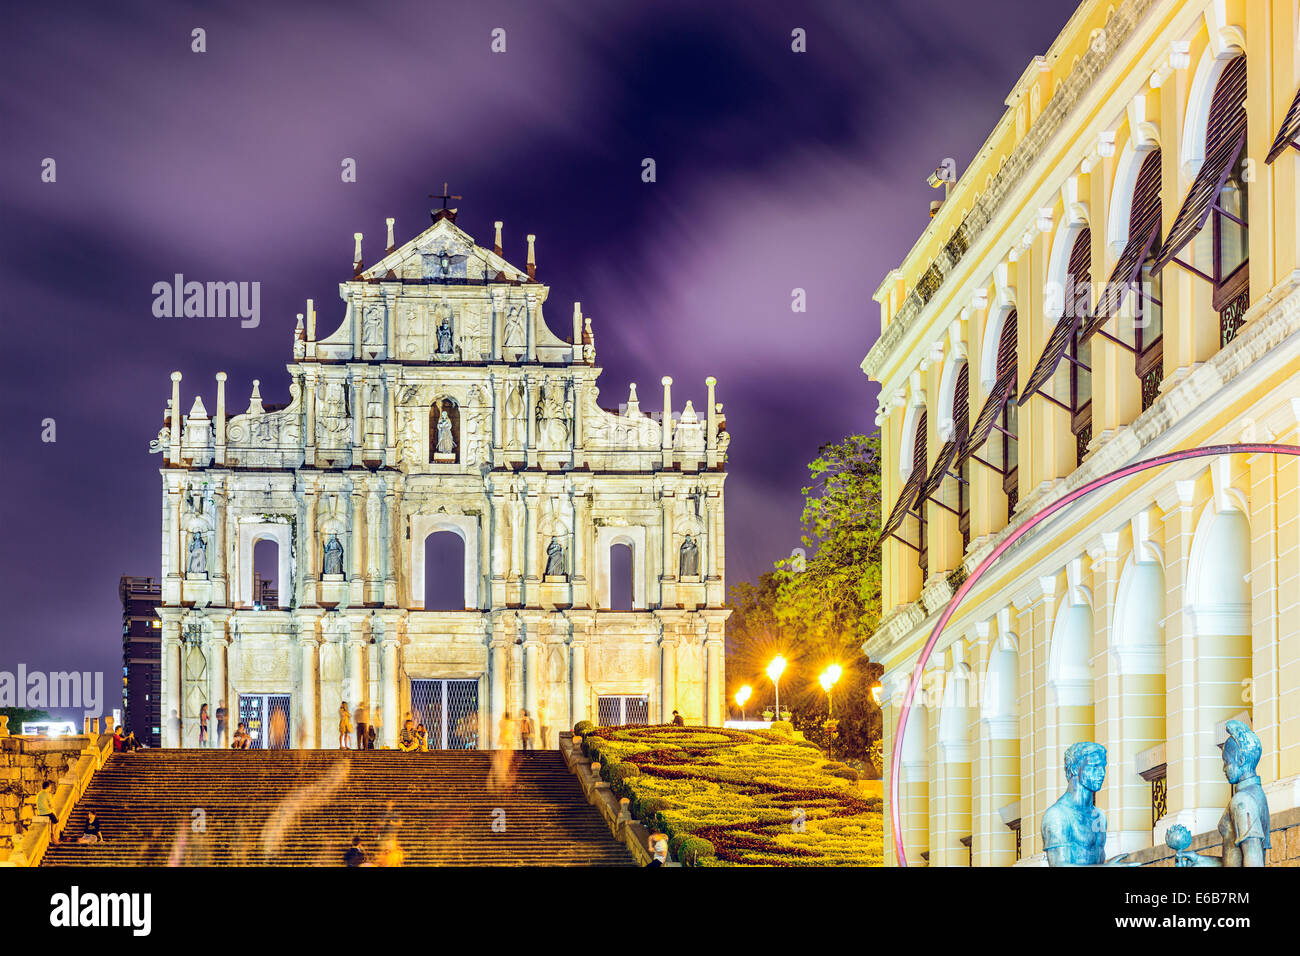 Macau, China at the Ruins of St. Paul Cathedral. - Stock Image